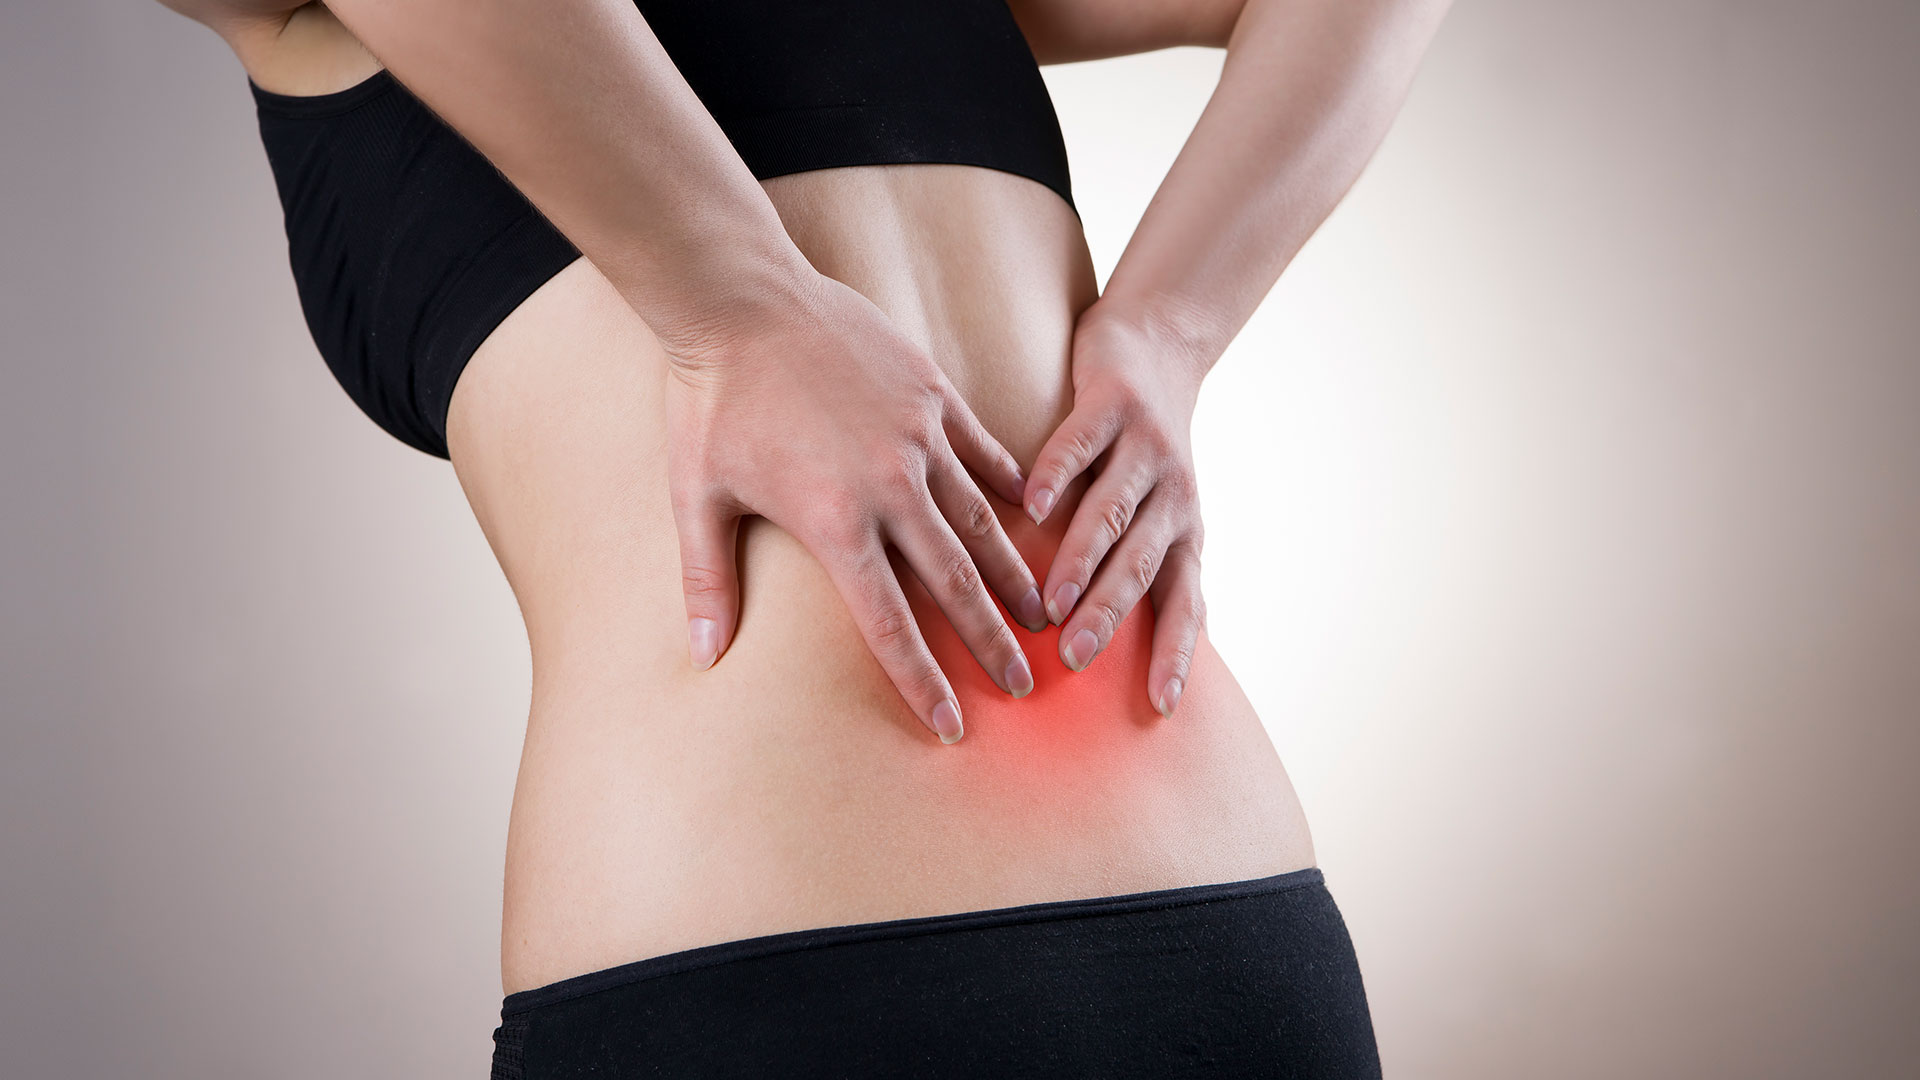 कमर दर्द के कारण व उपचार, Lower Back Pain Causes Treatment In Hindi,kamar dard ka ilaaj,kamar dard ko thik kaise kare,kamar me moch ka ilaaj,back pain reason and treatment,kamar dard ka ilaaj,back pain solution,